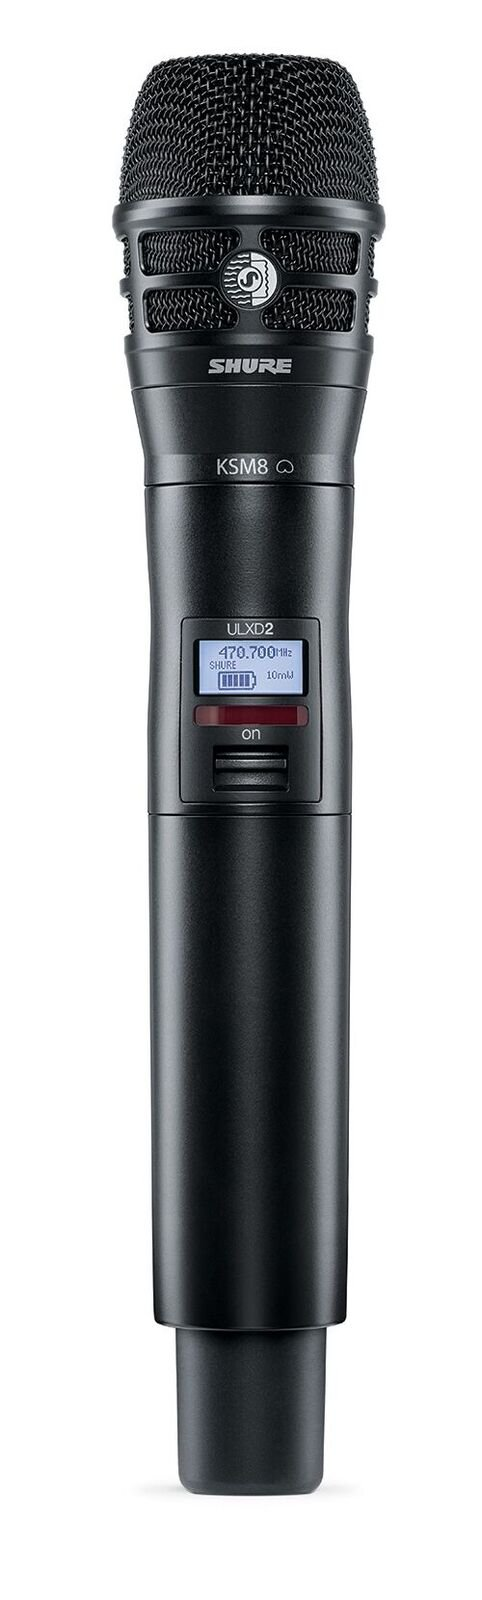 Handheld Transmitter in Black with KSM8 Capsule for ULX-D Wireless Systems, H50 Band (534-598 MHz)